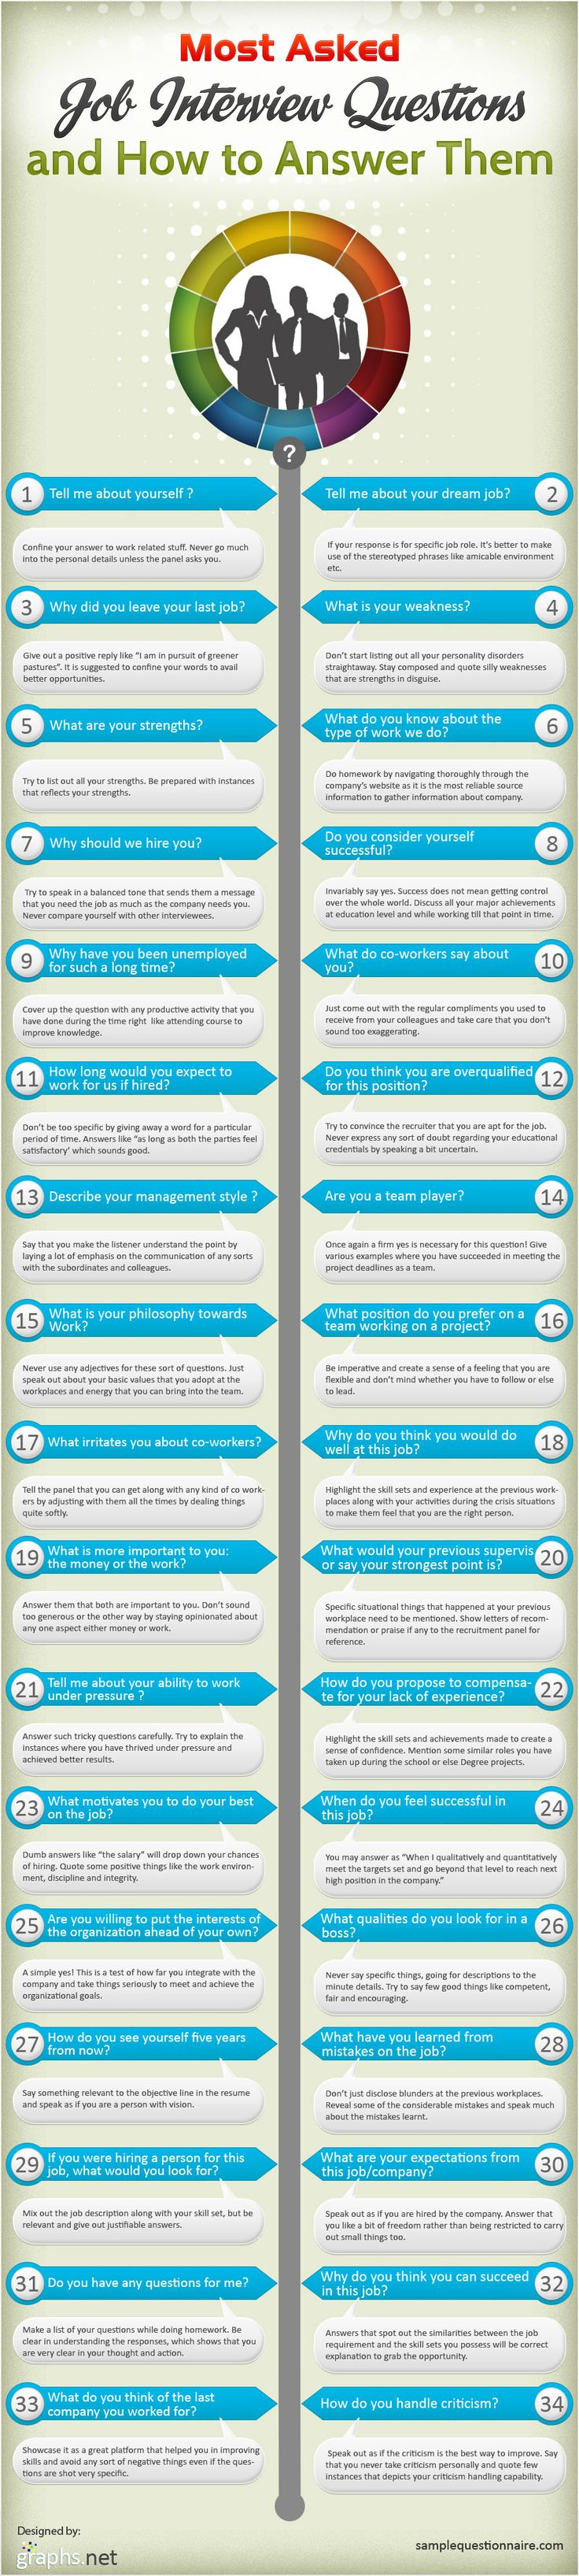 ideas about management interview questions 34 most asked job interview questions how to answer them